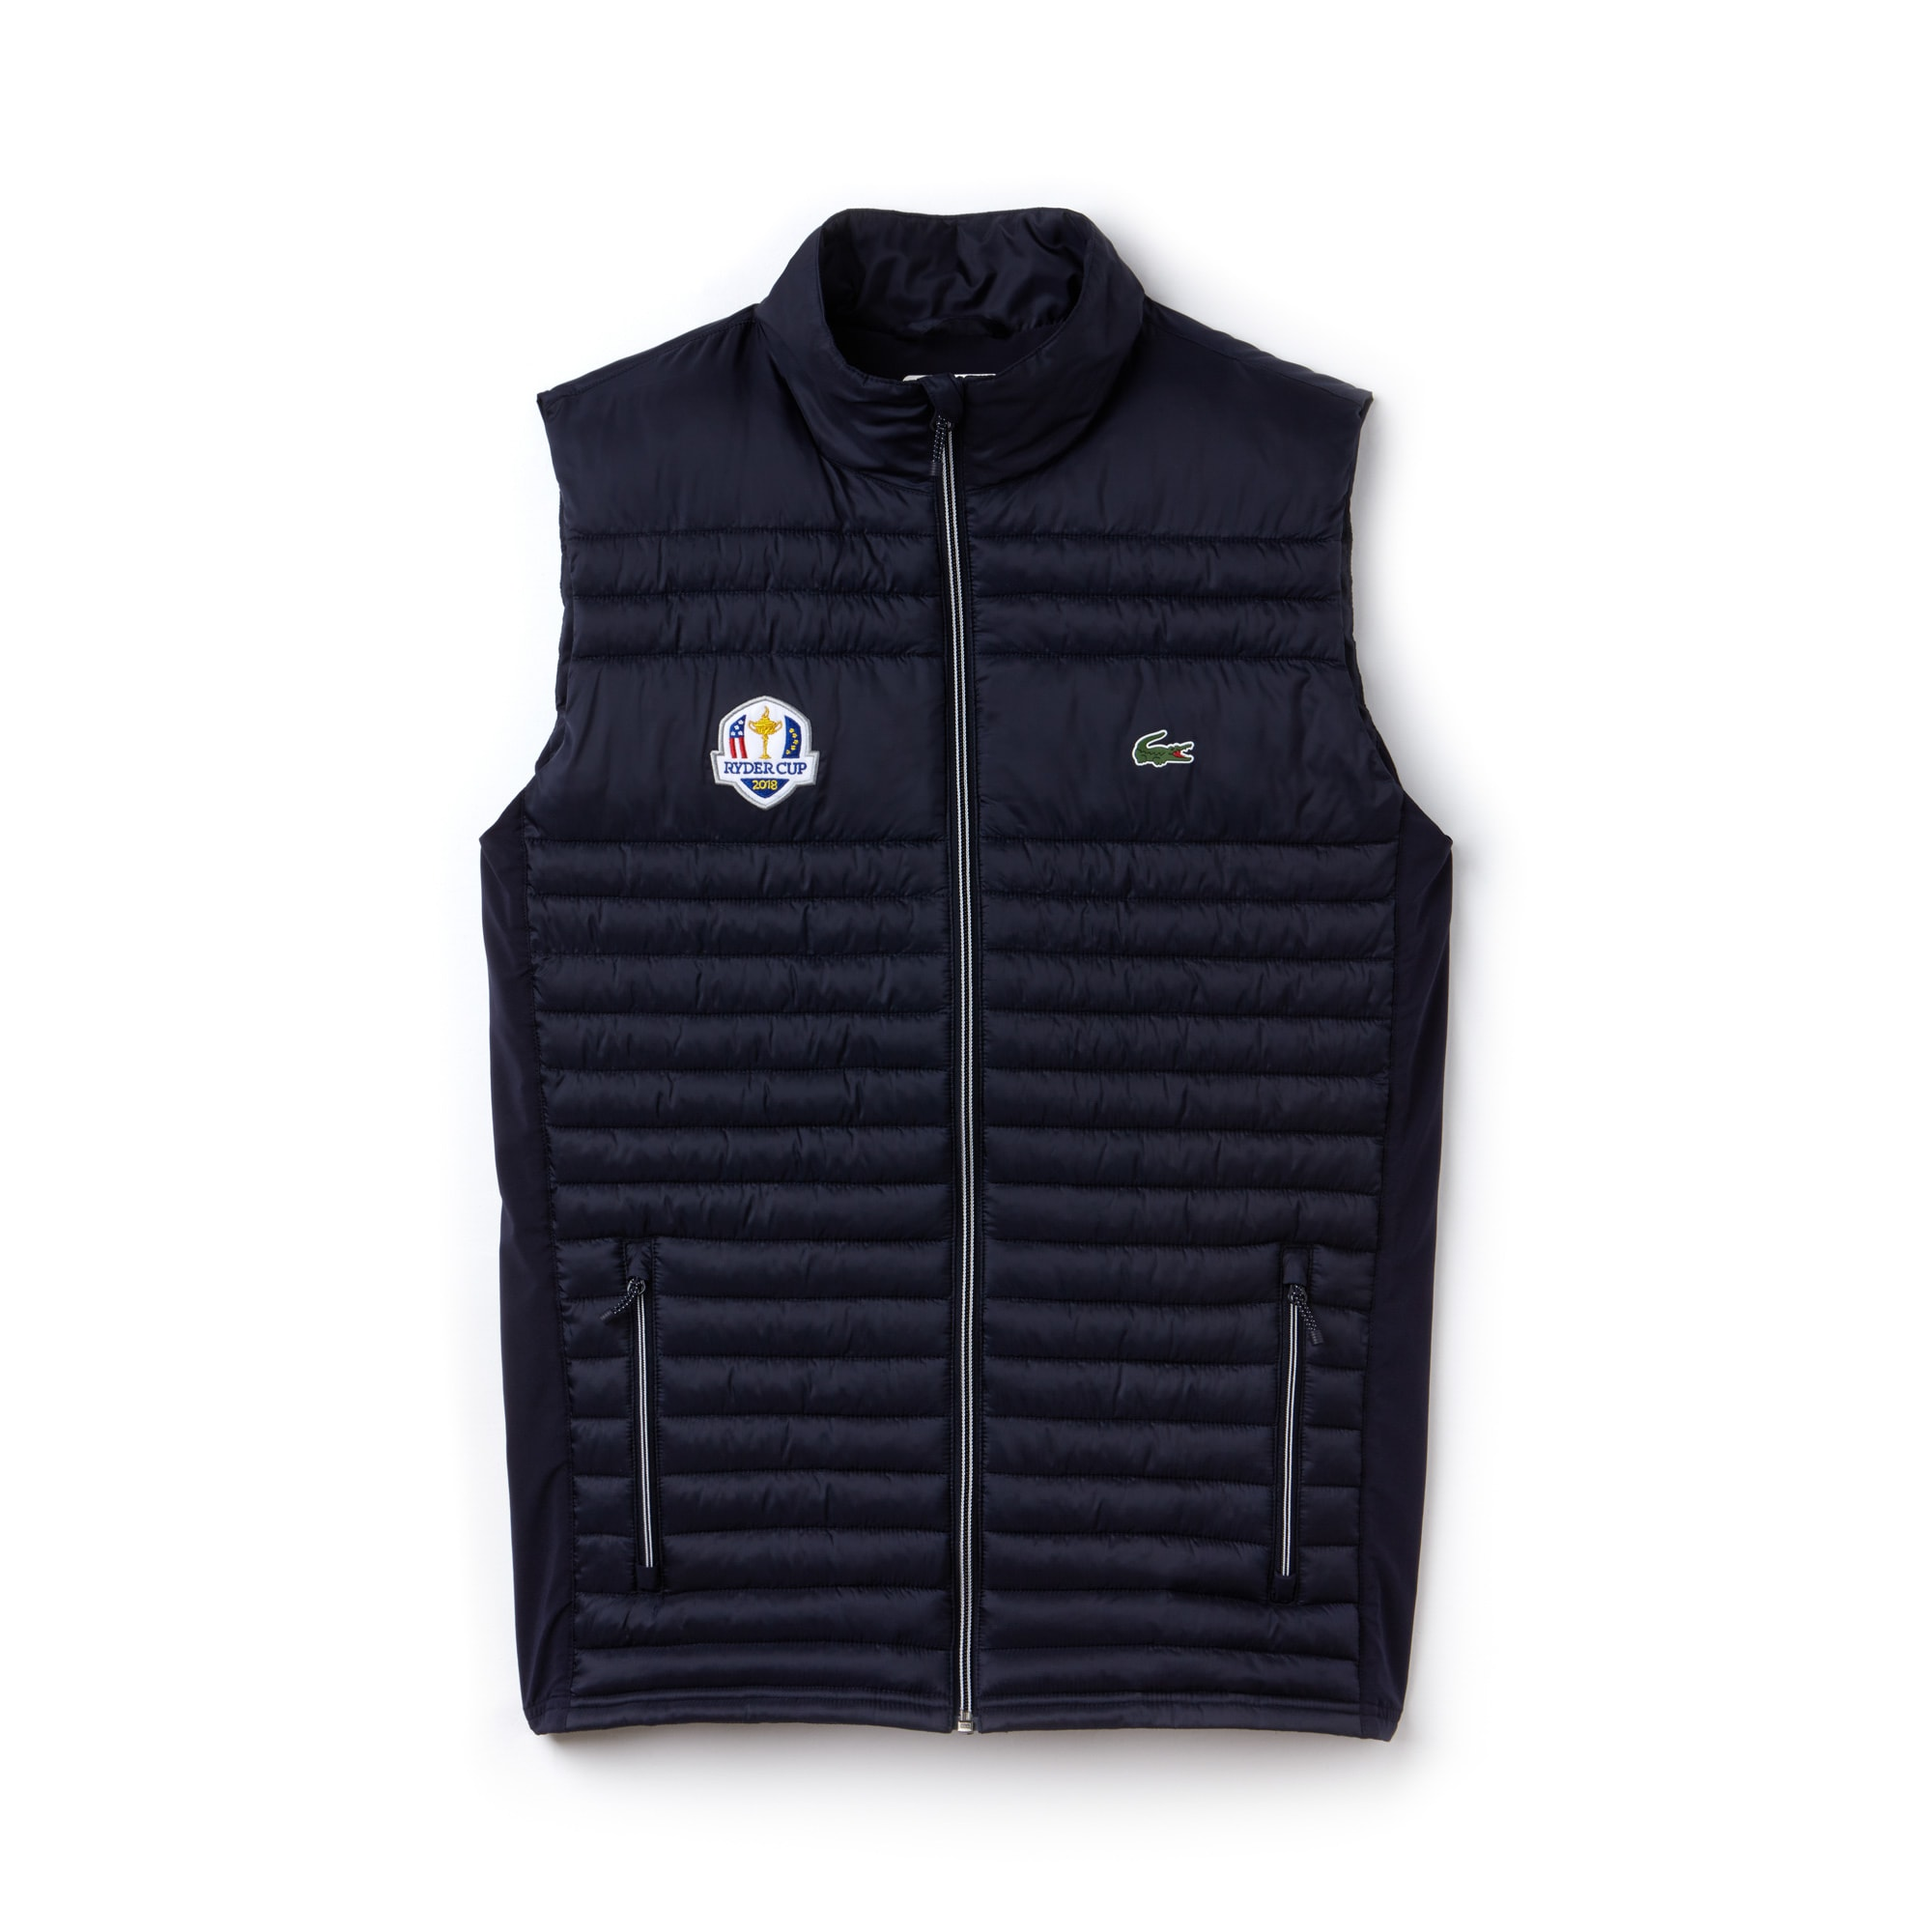 Men's Lacoste SPORT Ryder Cup Edition Technical Golf Vest